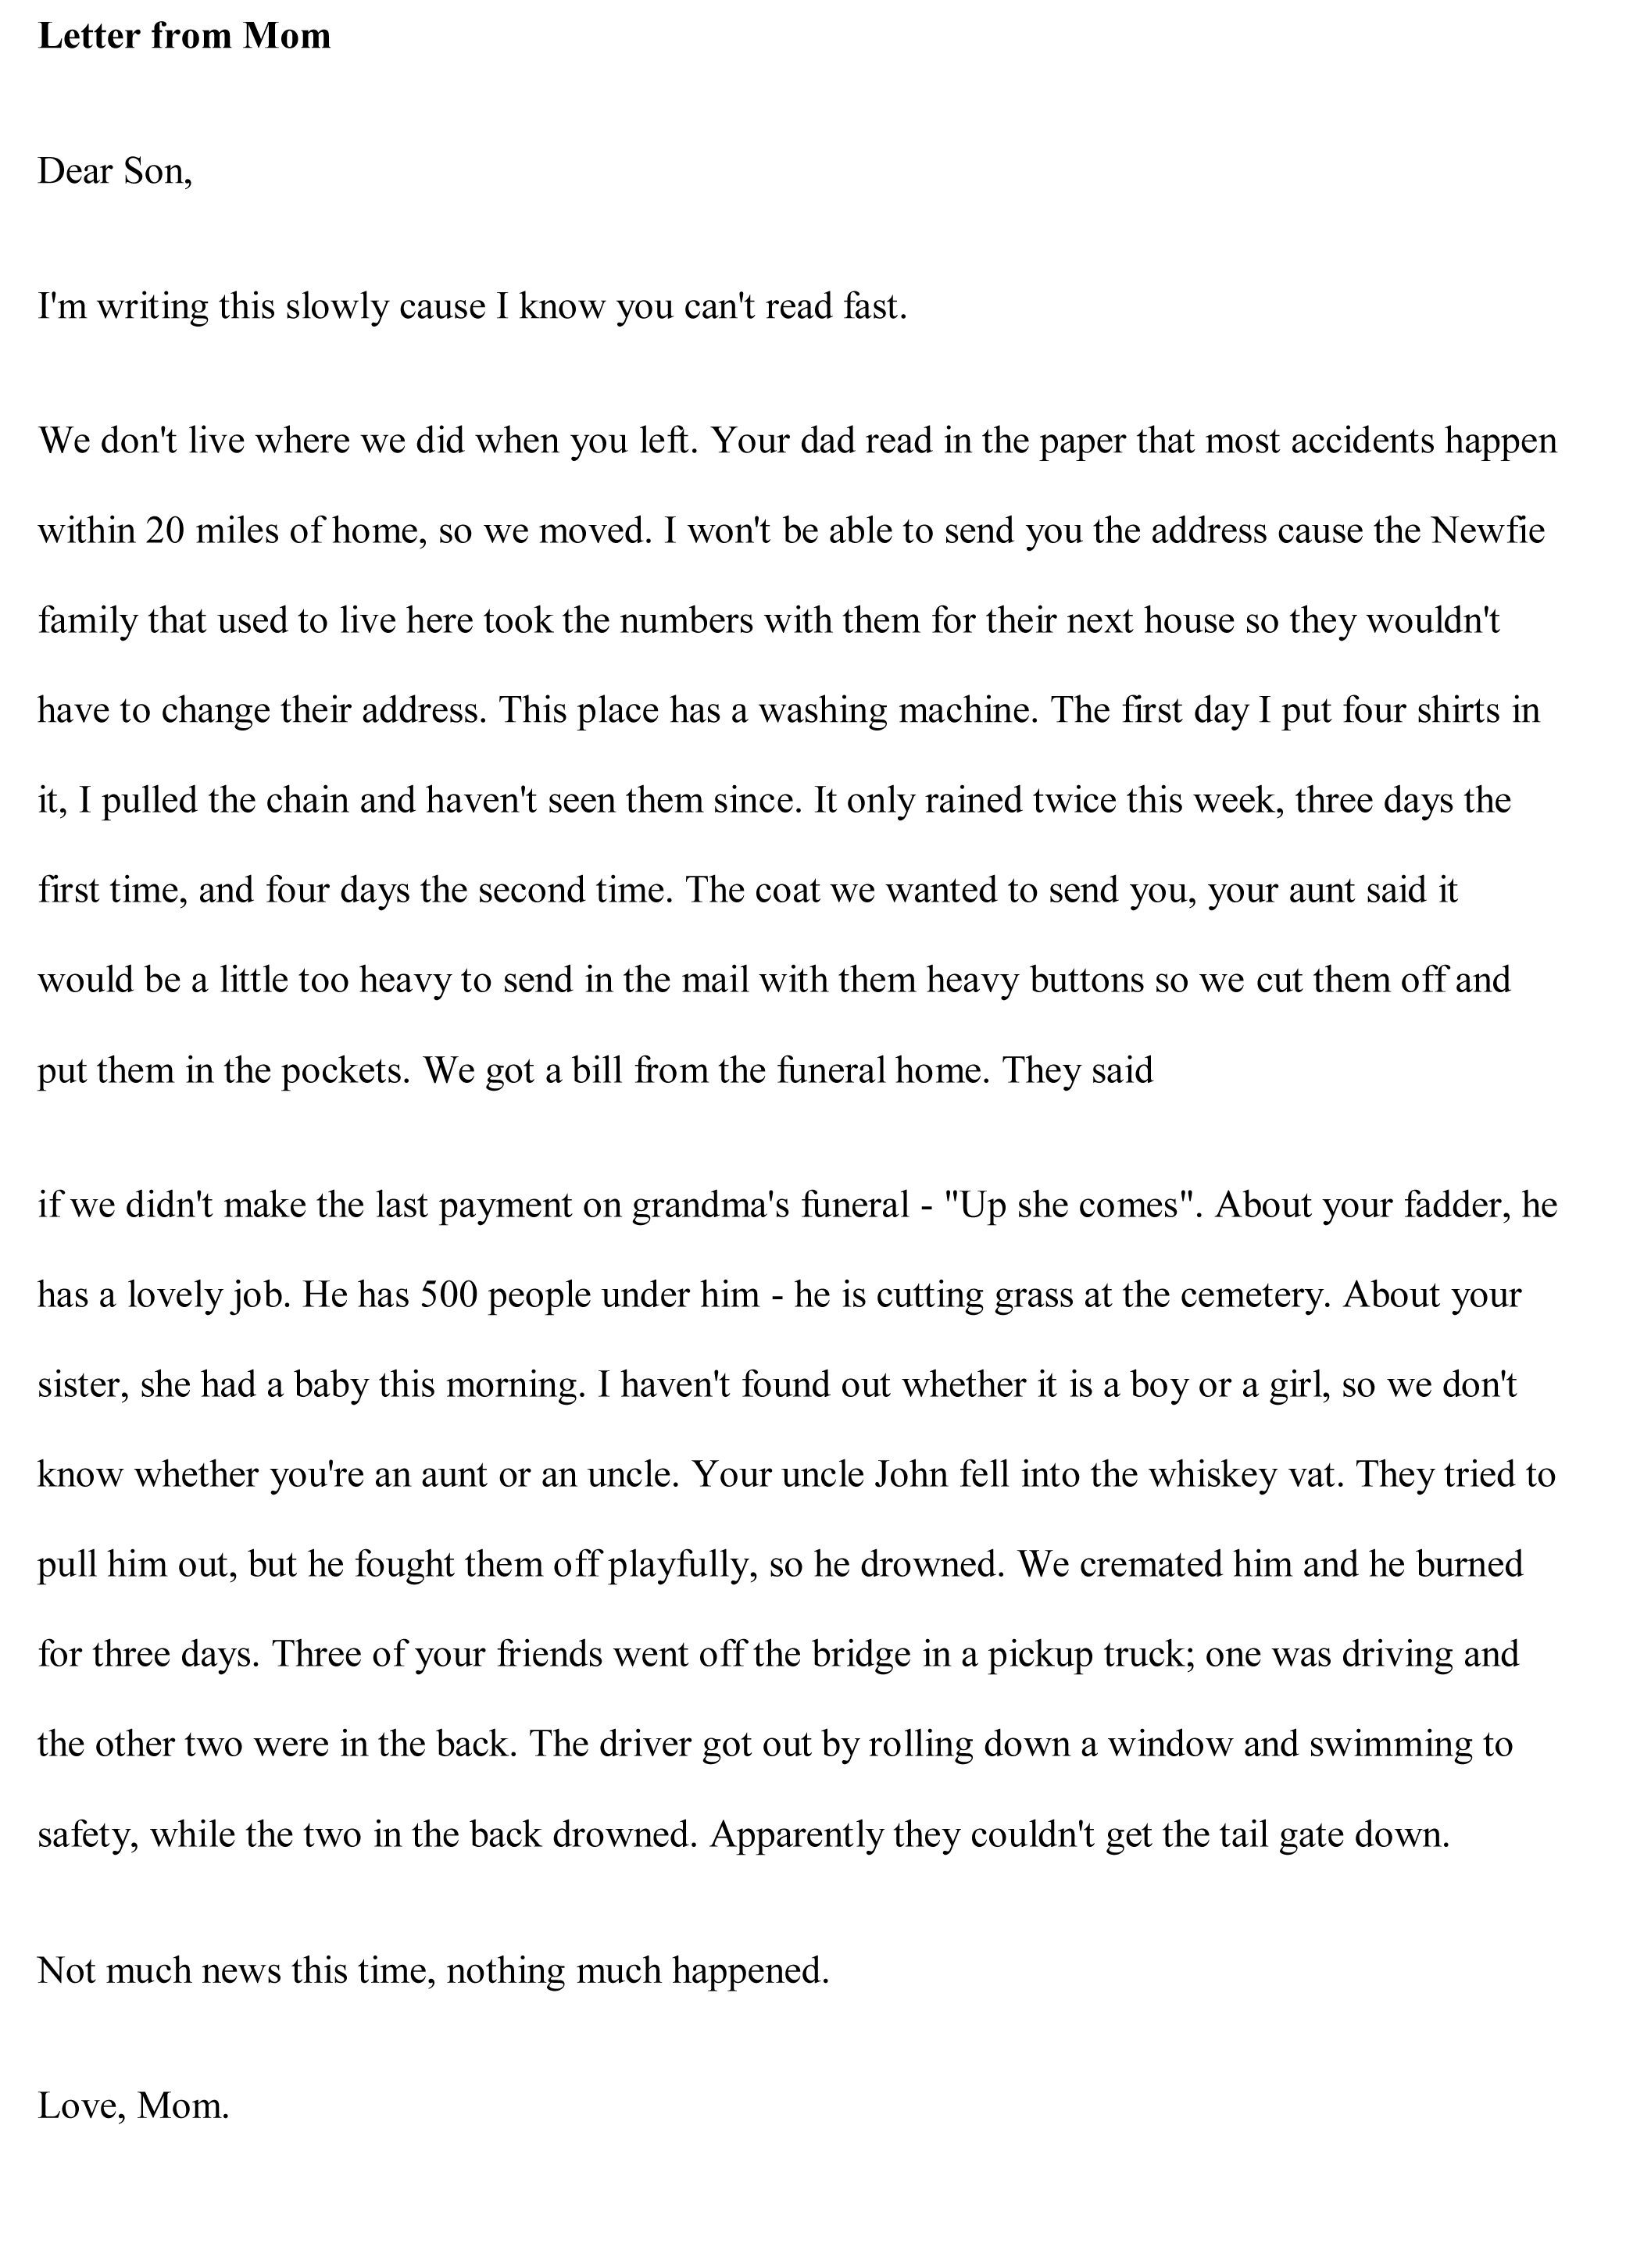 003 Essay Example Funny Essays Free Stupendous Topics Written By Students For College Full